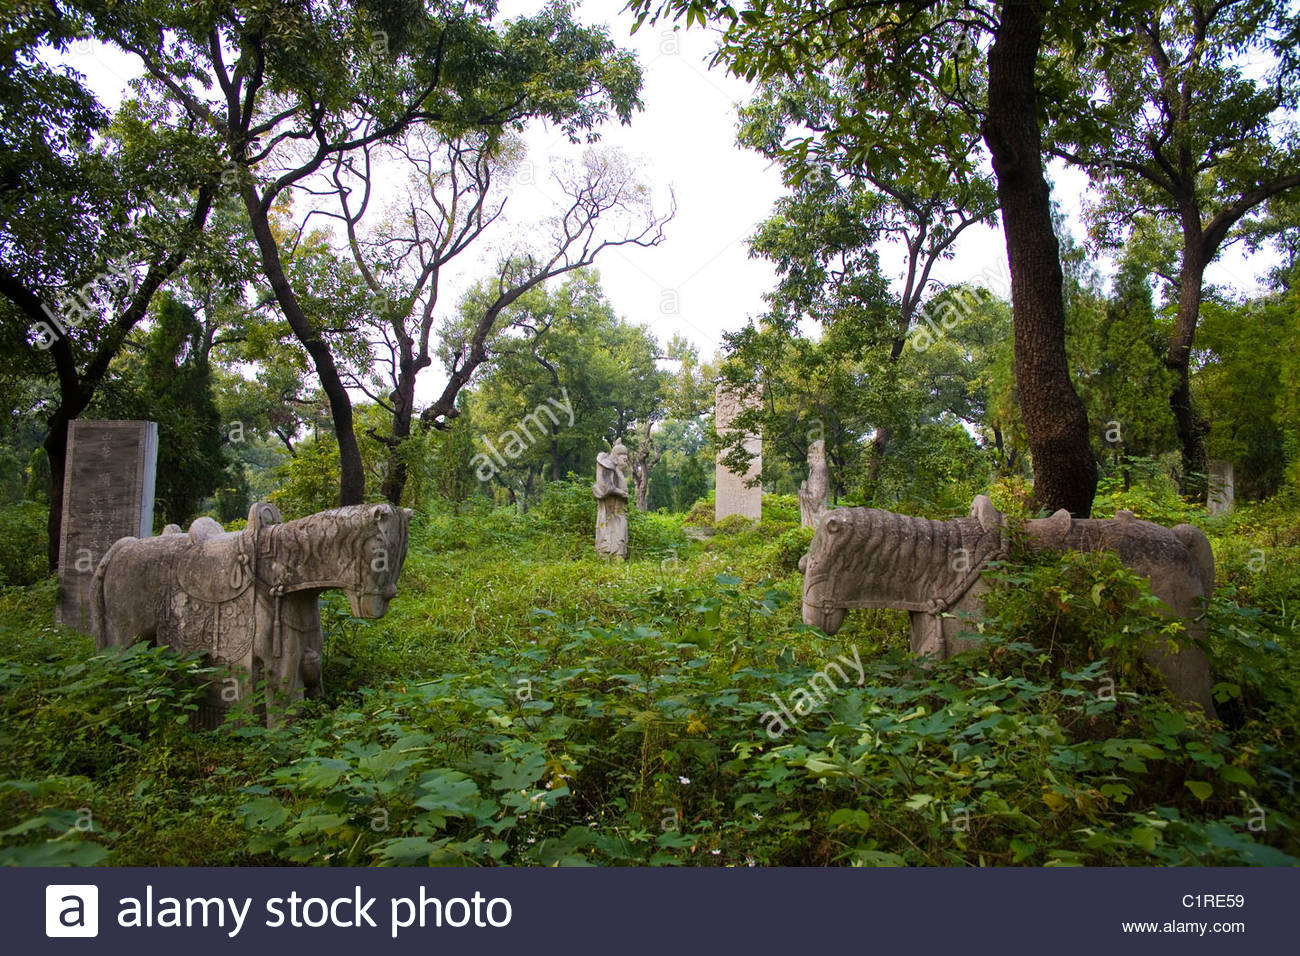 Qufu, Confucius Forest Cemetery, Shandong Province, China